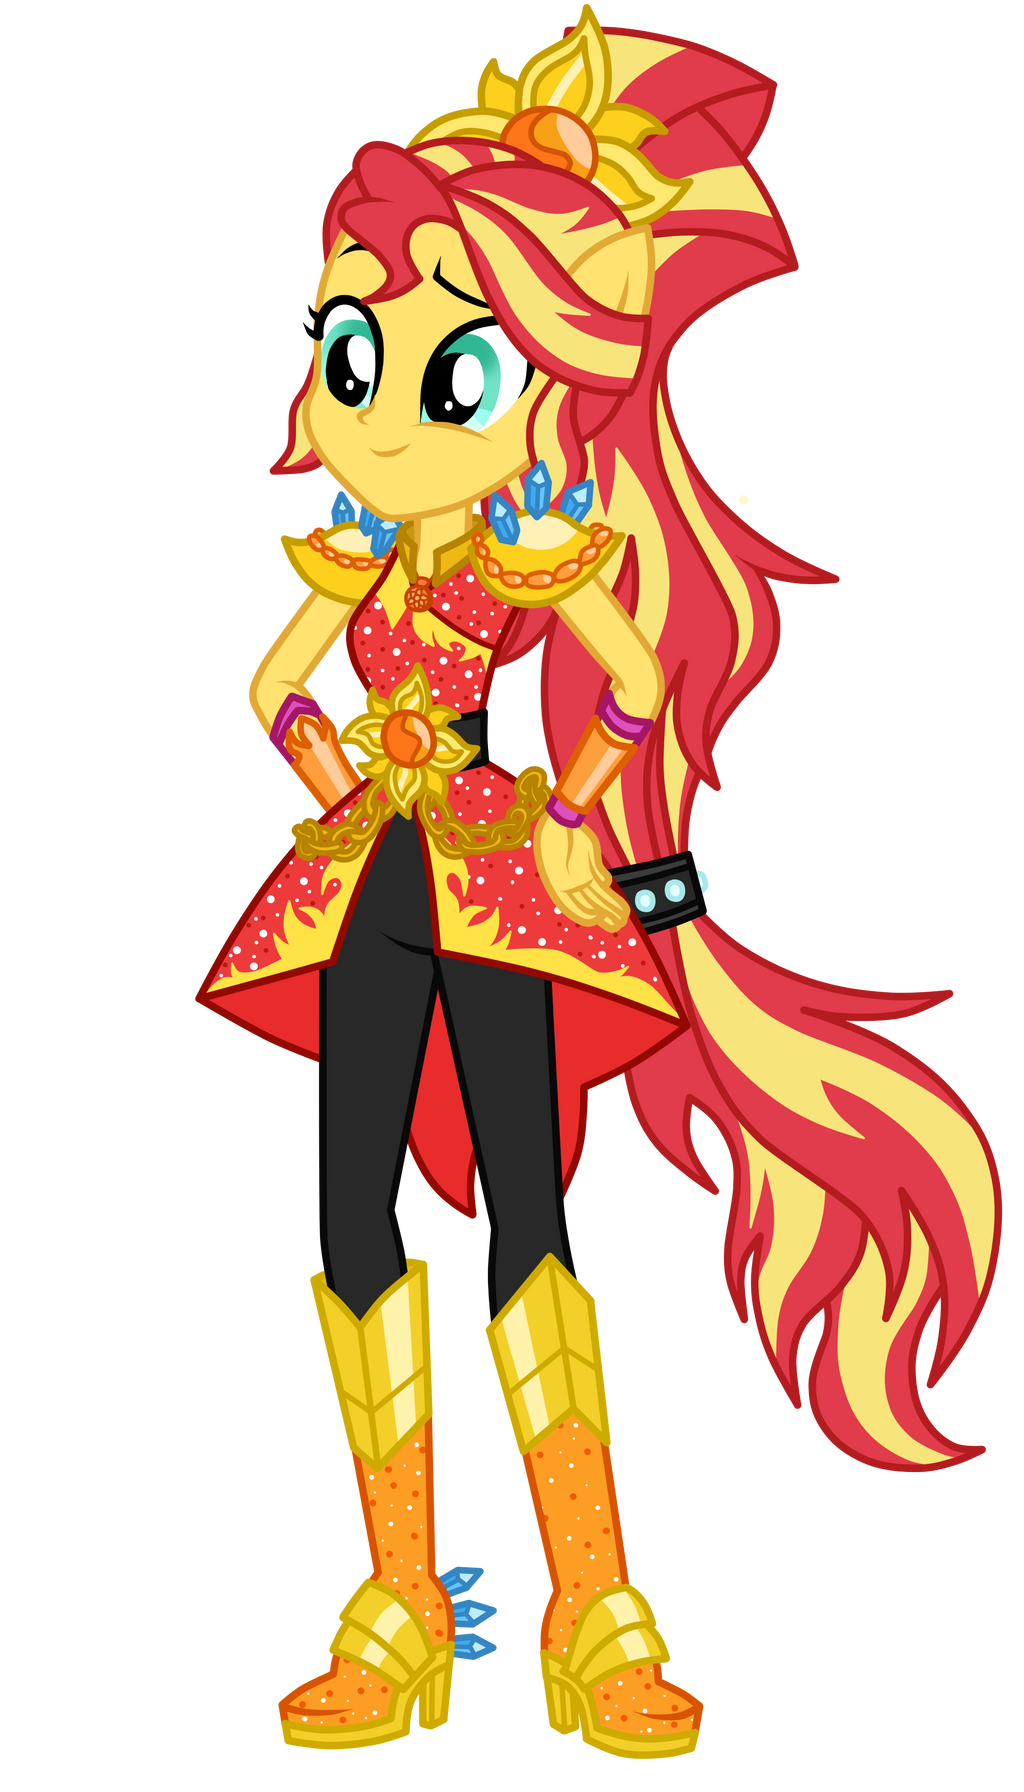 Legend of everfree sunset shimmer by mixiepie on deviantart for My little pony legend of everfree coloring pages